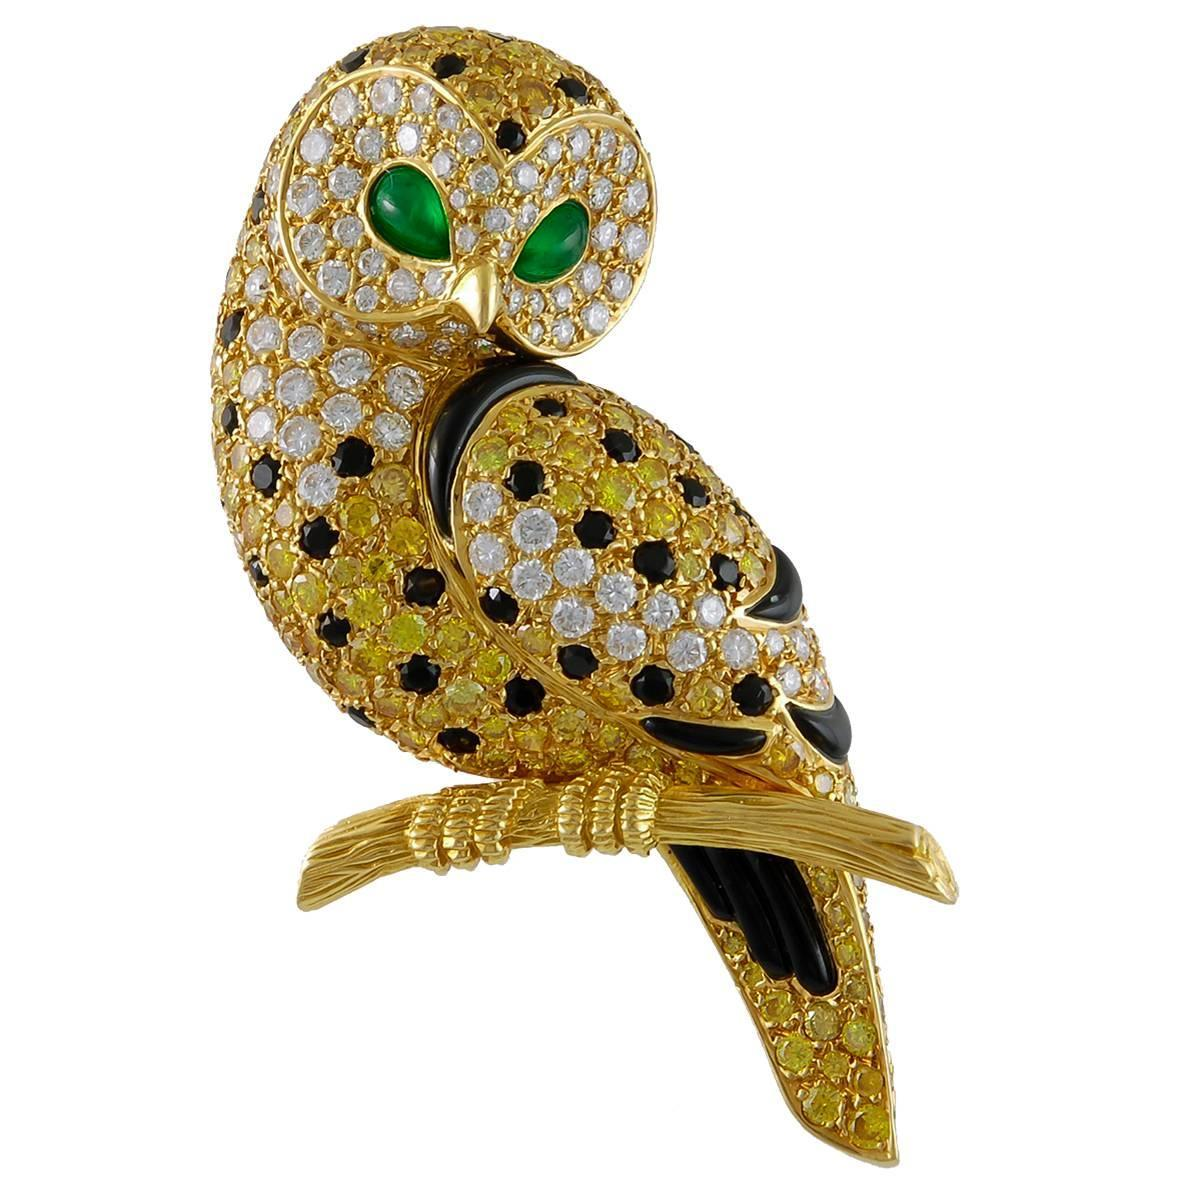 Yafa signed jewels new york ny 1stdibs page 4 - Van Cleef And Arpels Diamond And Fancy Yellow Diamond Gold Owl Brooch For Sale At 1stdibs